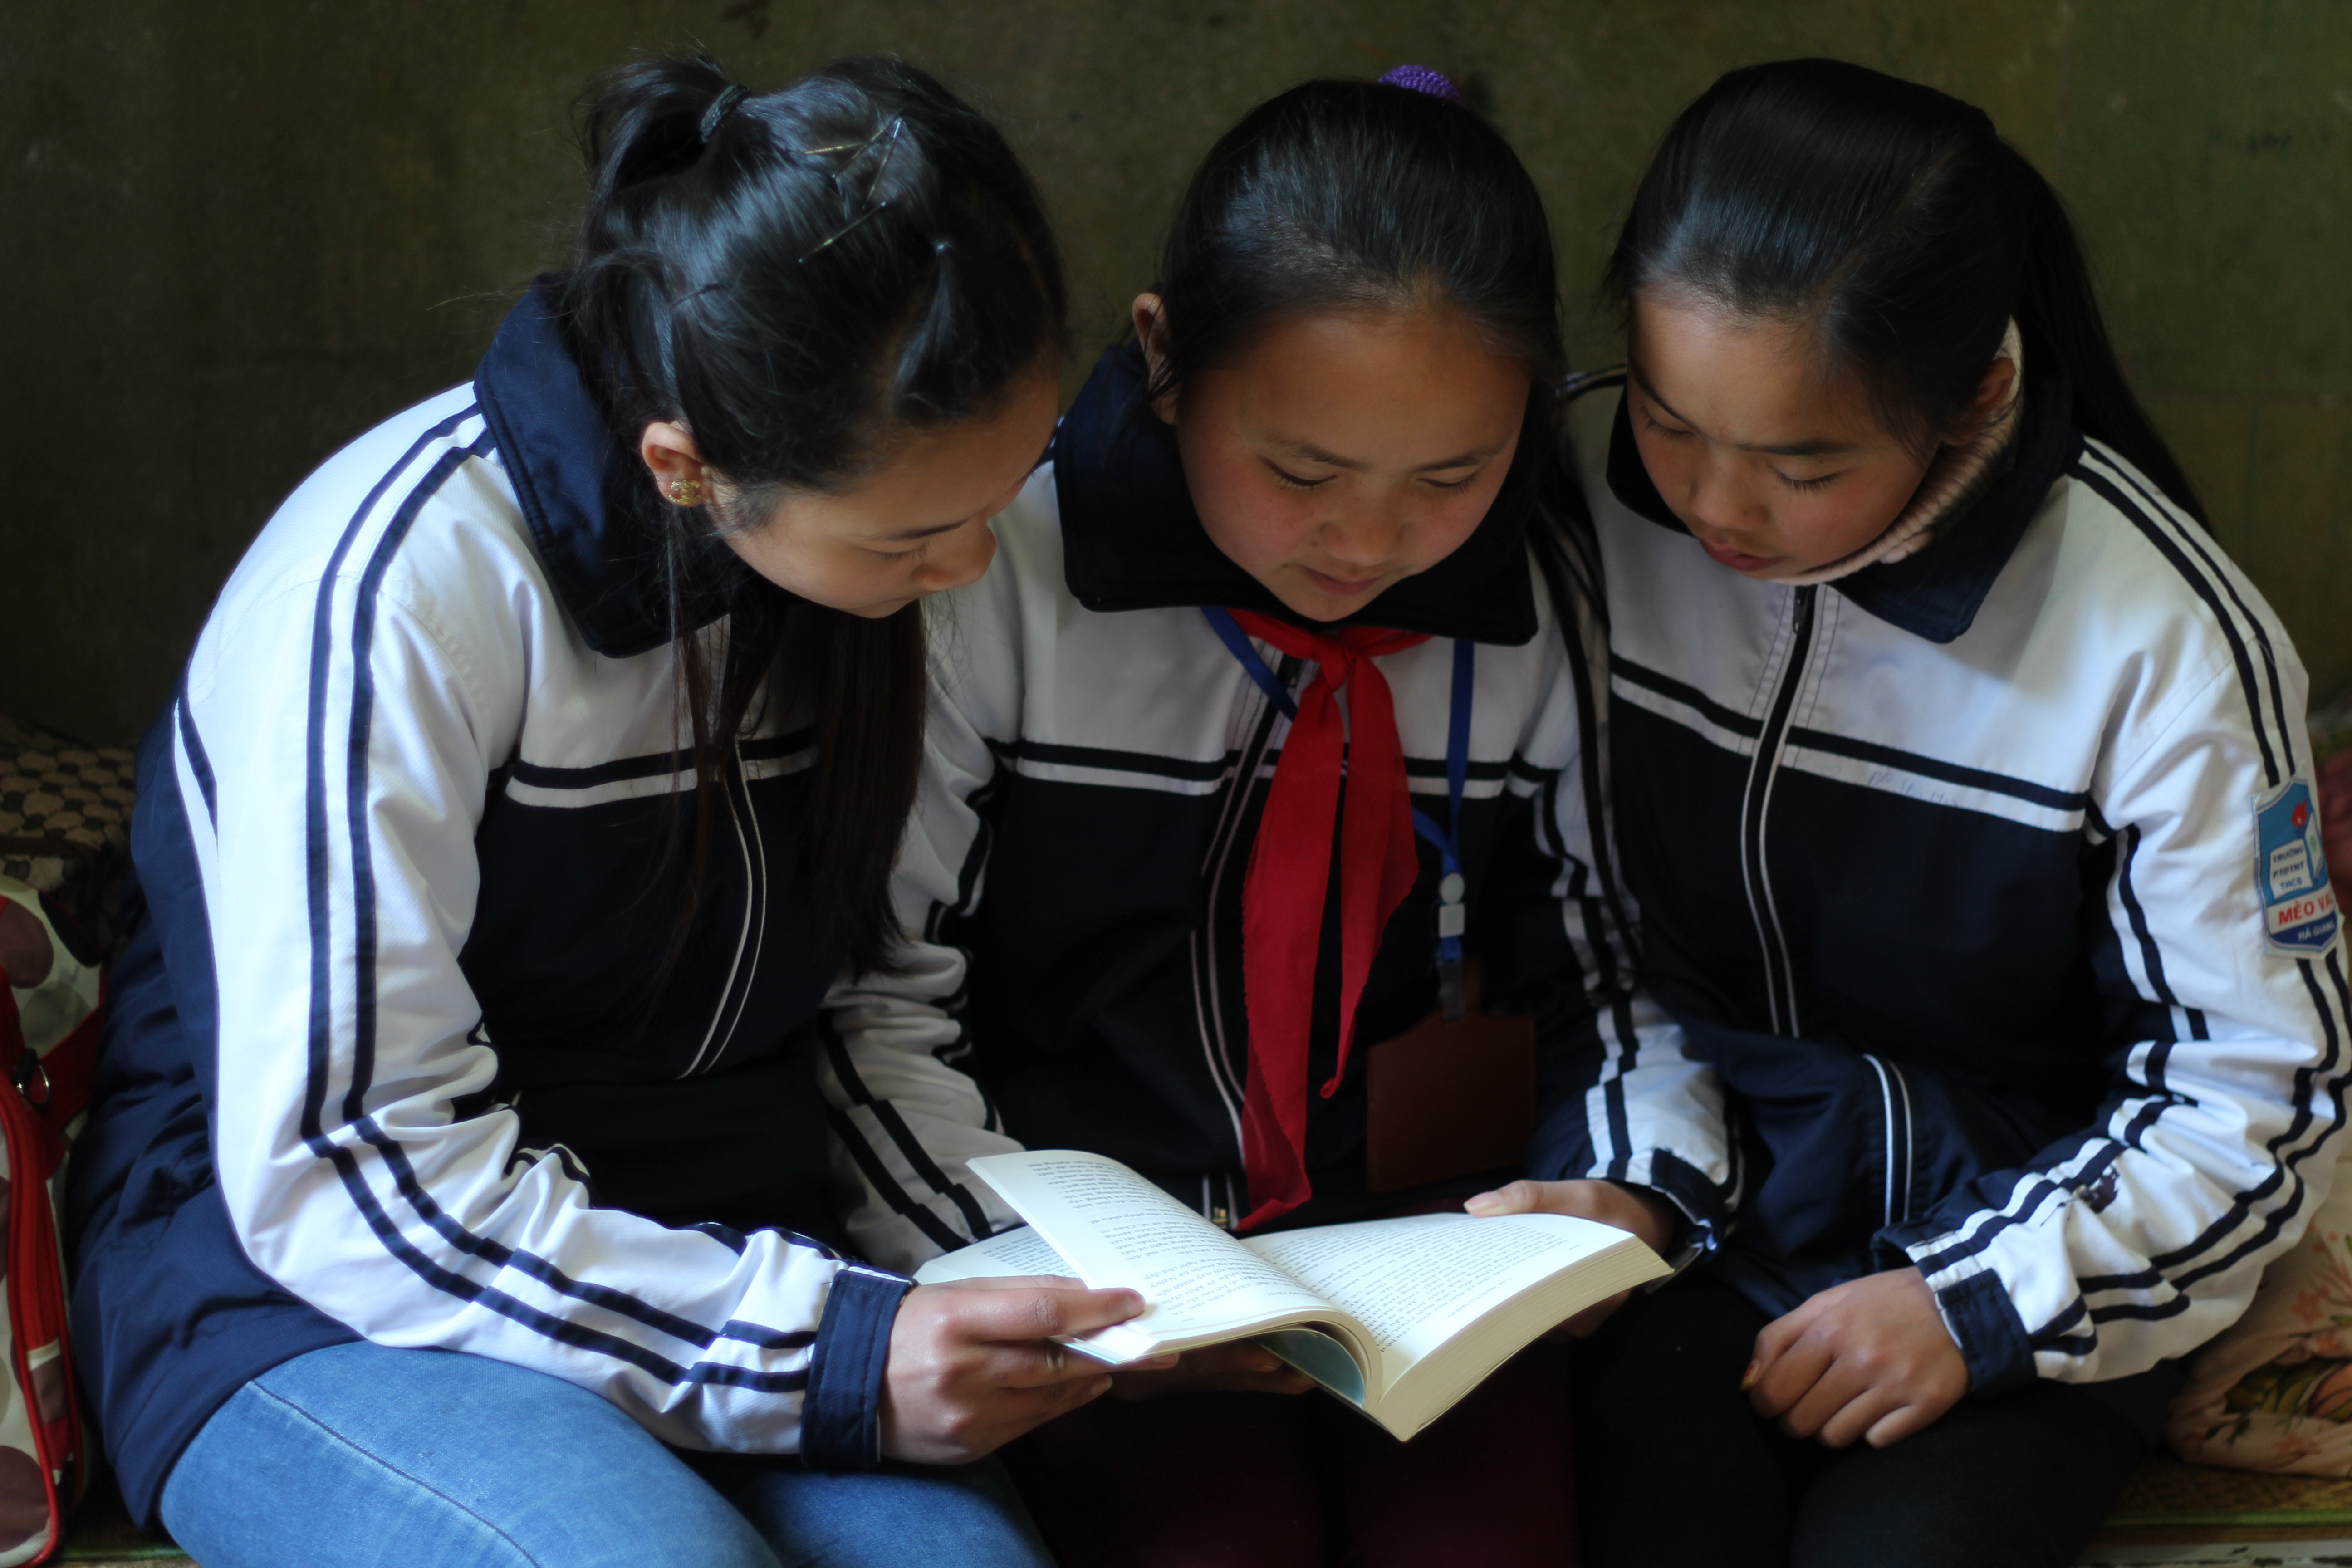 Cho and 2 female classmates studying ∏ Plan International